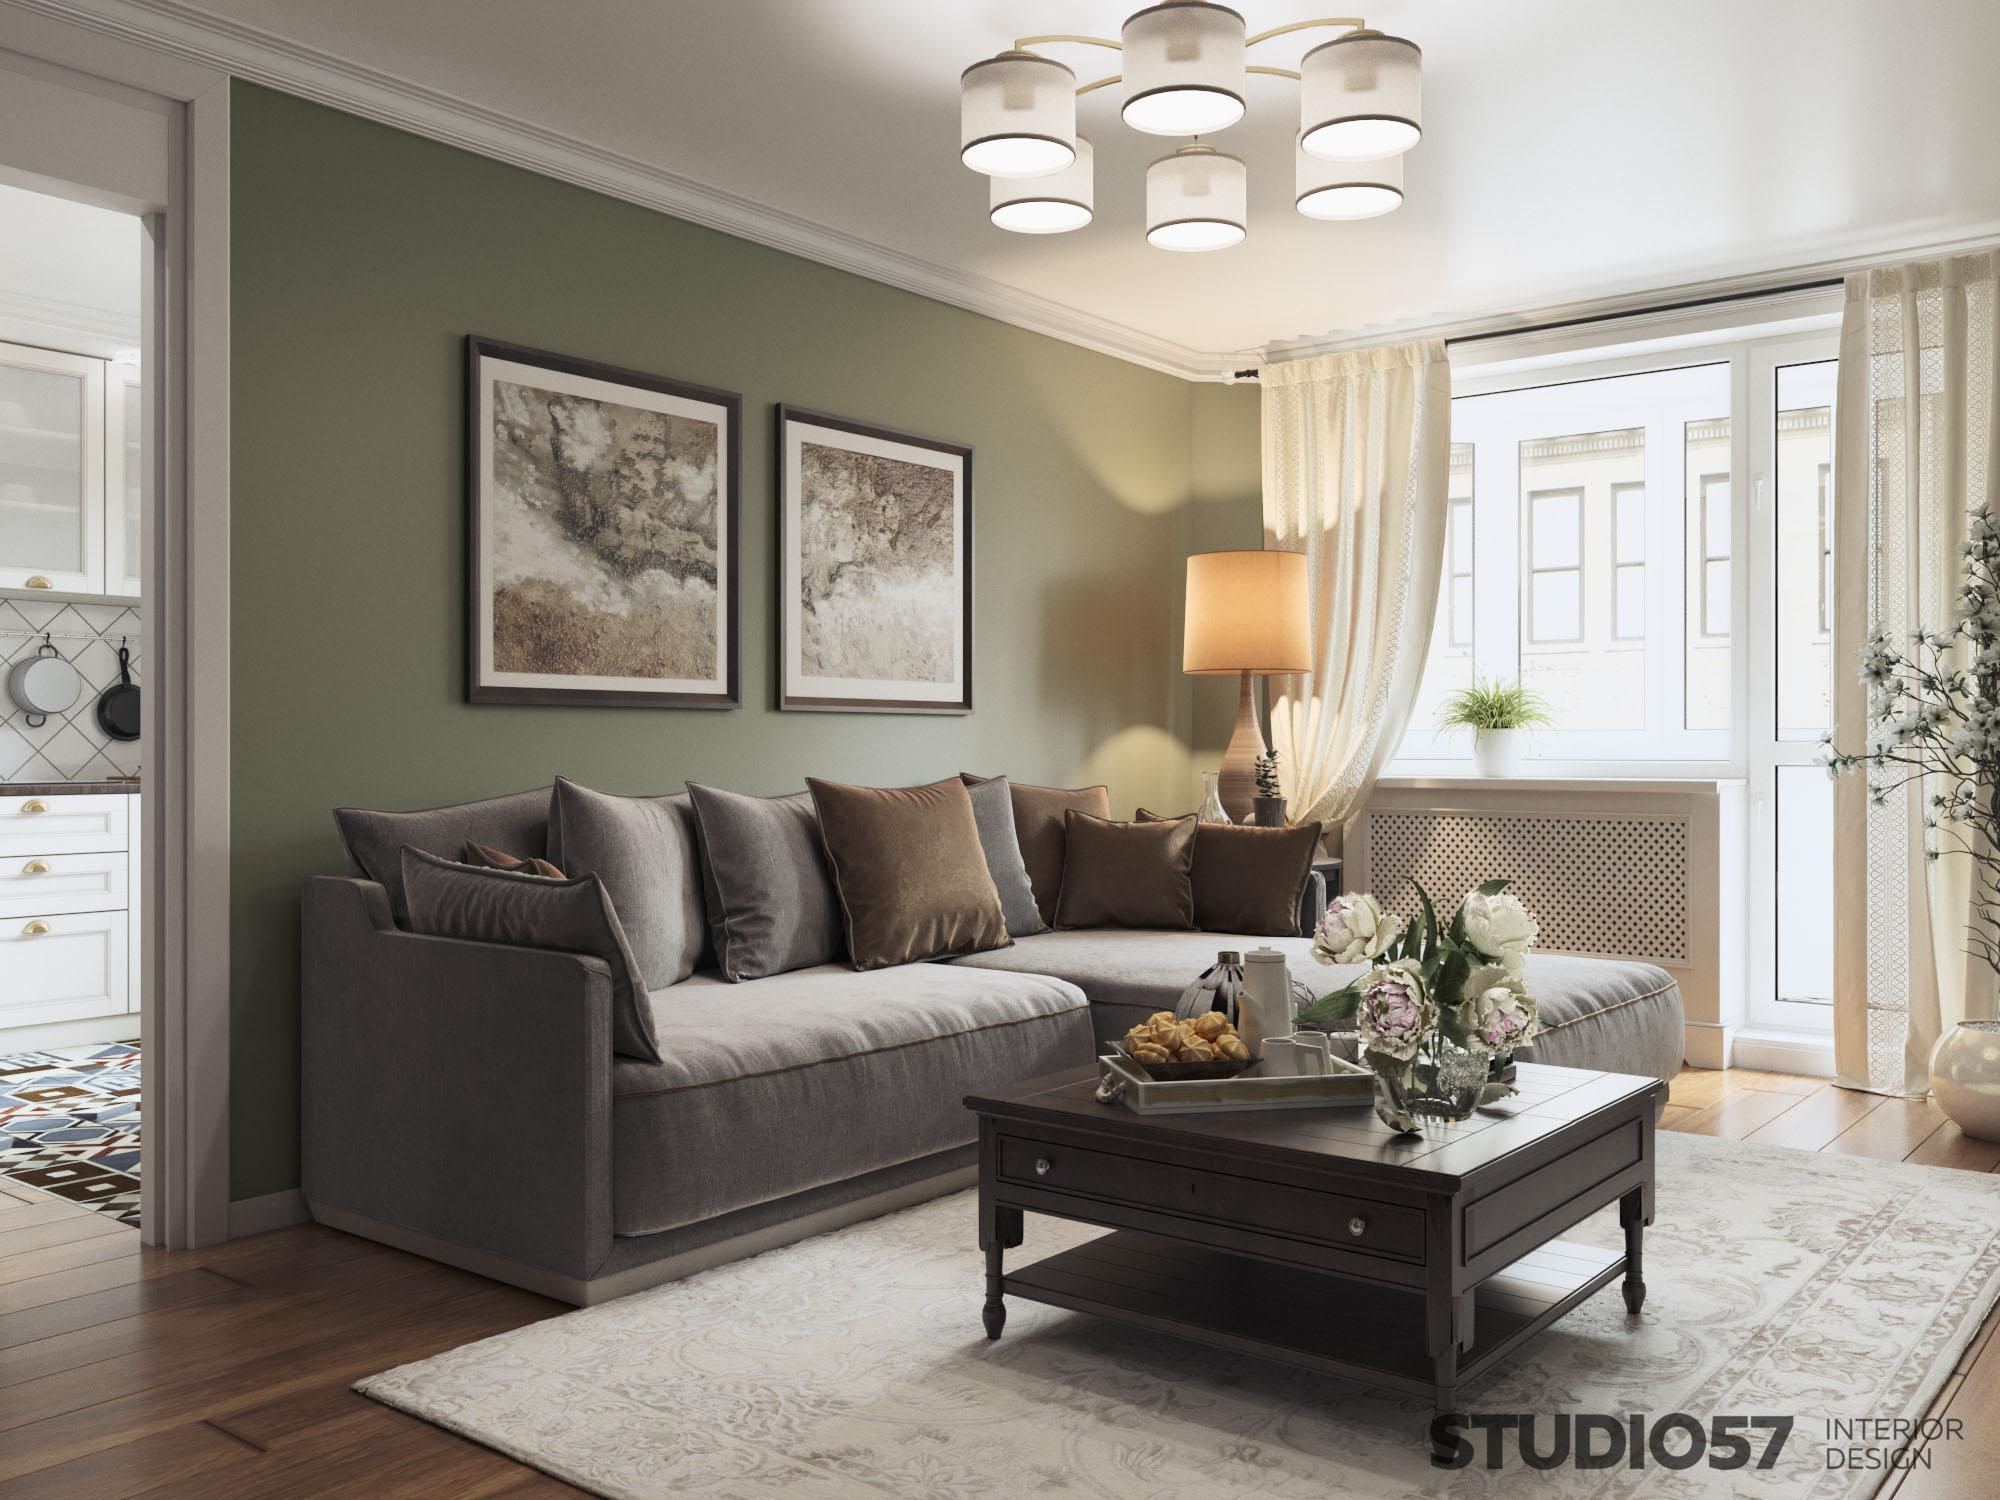 Neoclassic apartment interior design photo